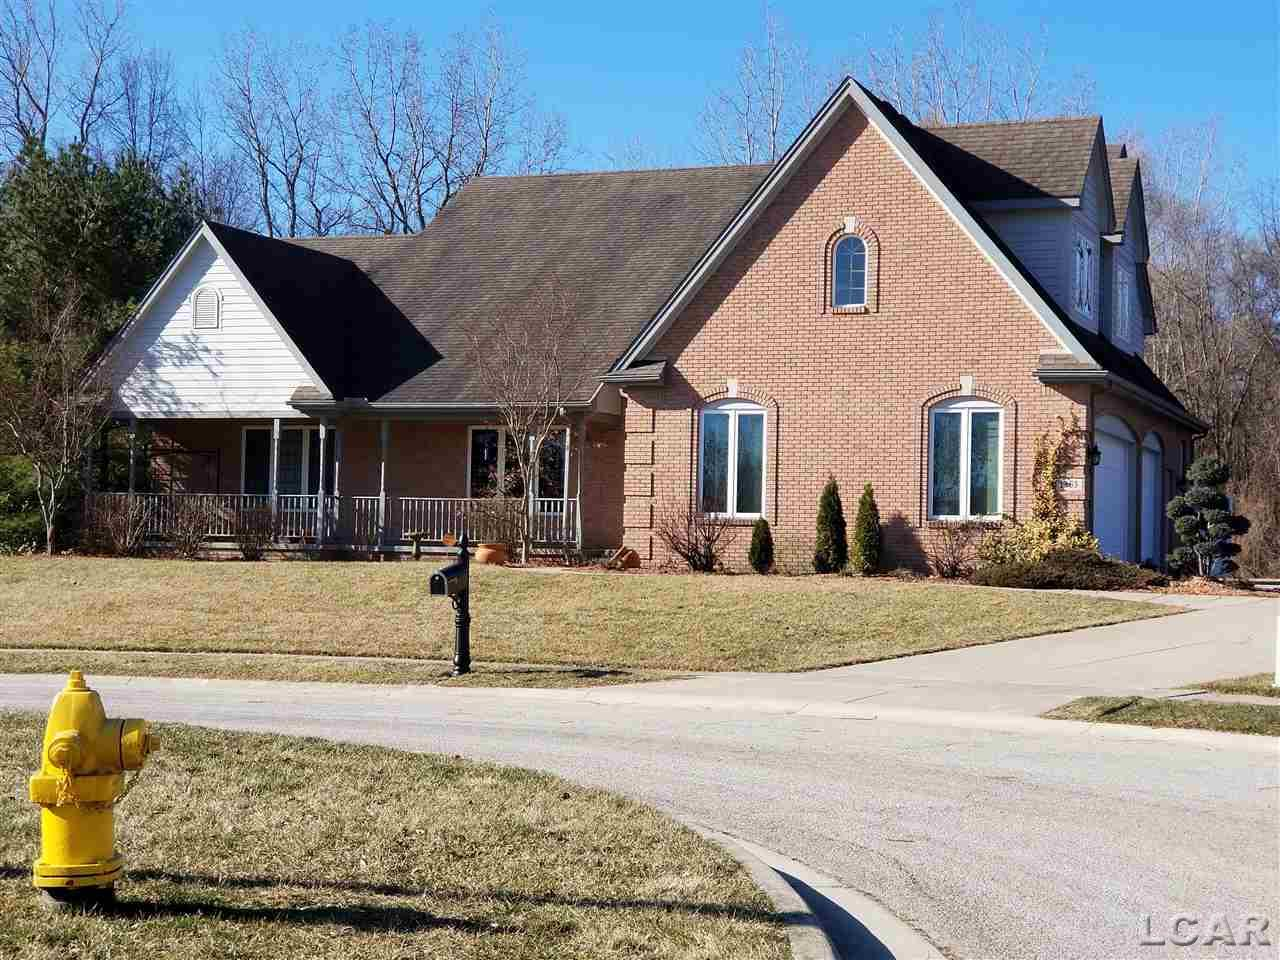 Real Estate 4u In The Mitten Your Key To Real Estate In